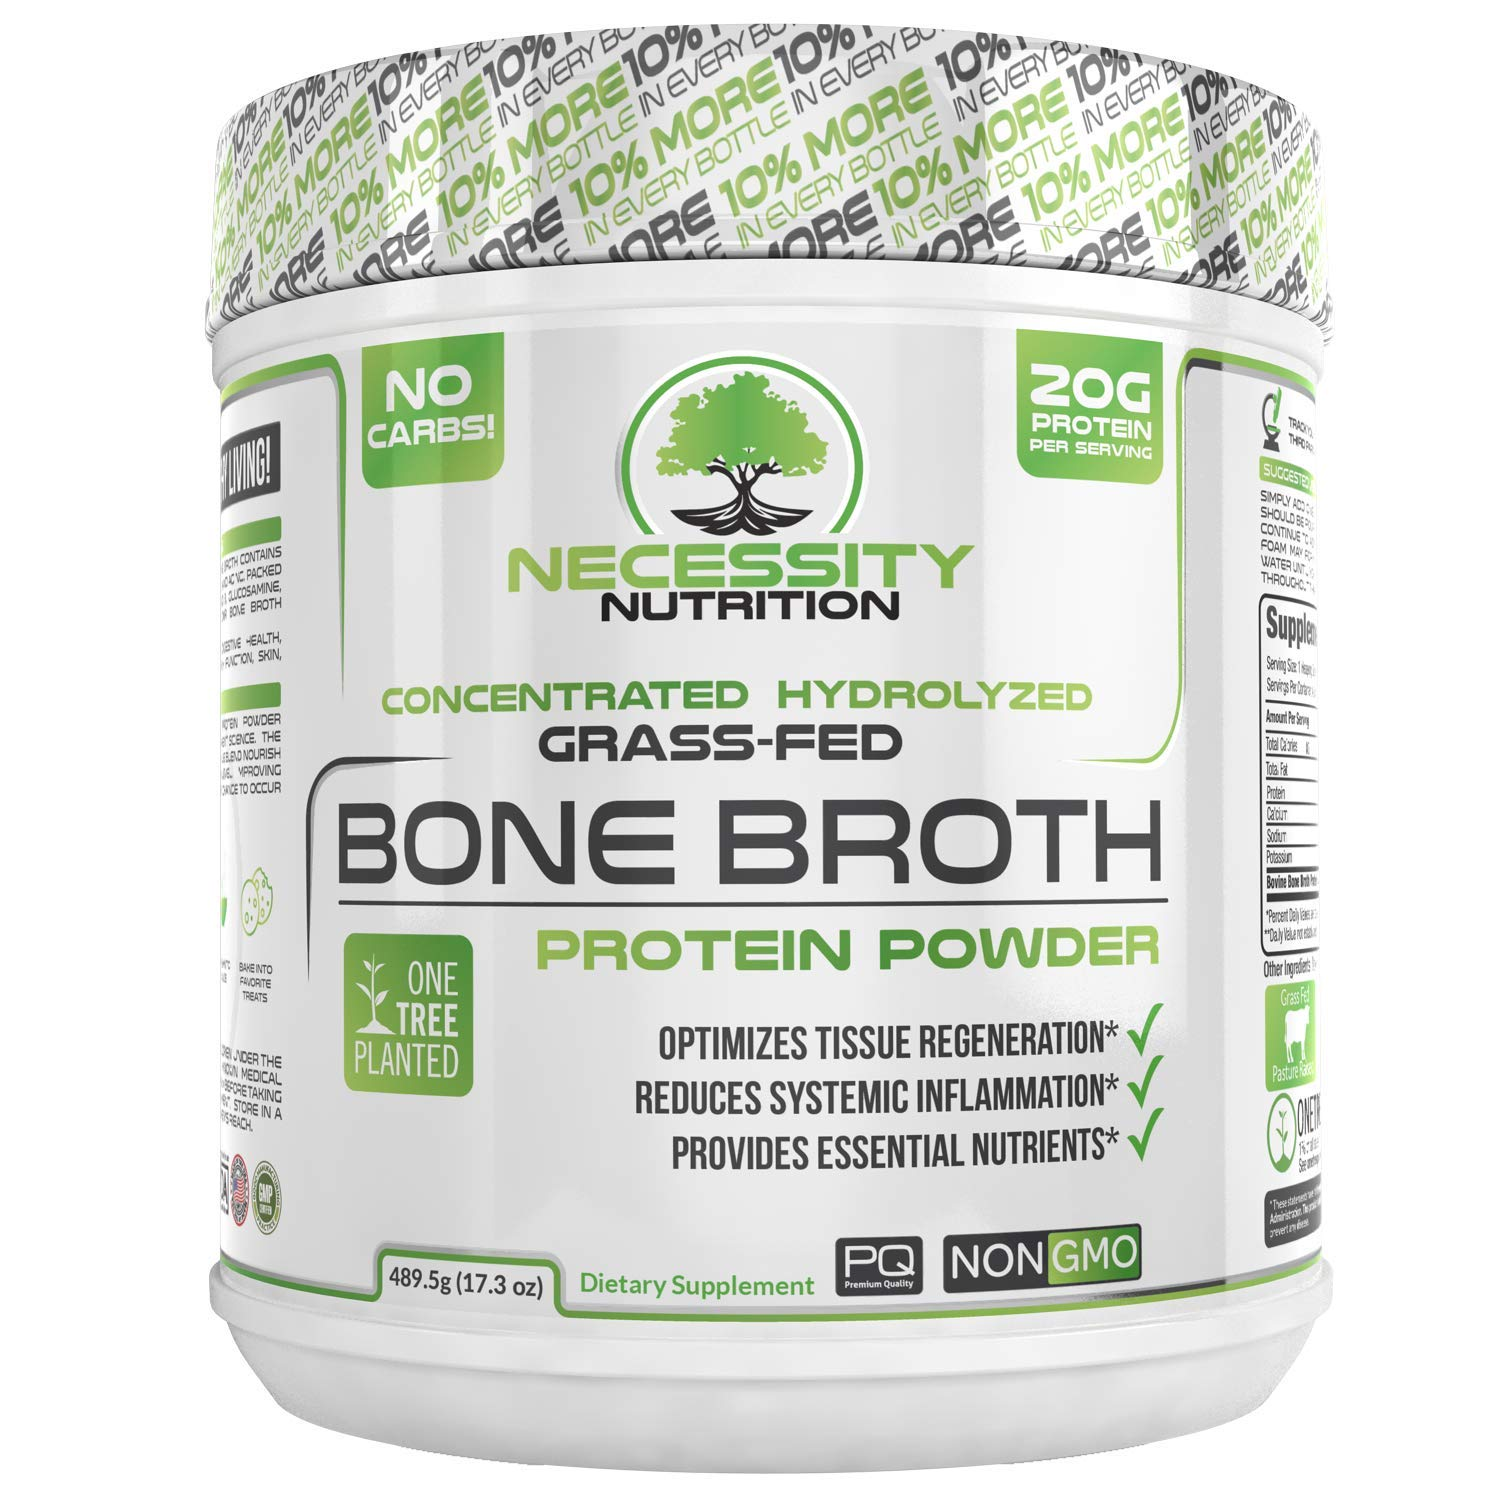 Bone Broth Protein Powder - Natural & Pure Paleo/Keto Friendly Gluten Free - Grass Fed Pasture Raised Non GMO - Premium Gut Health by Necessity Nutrition